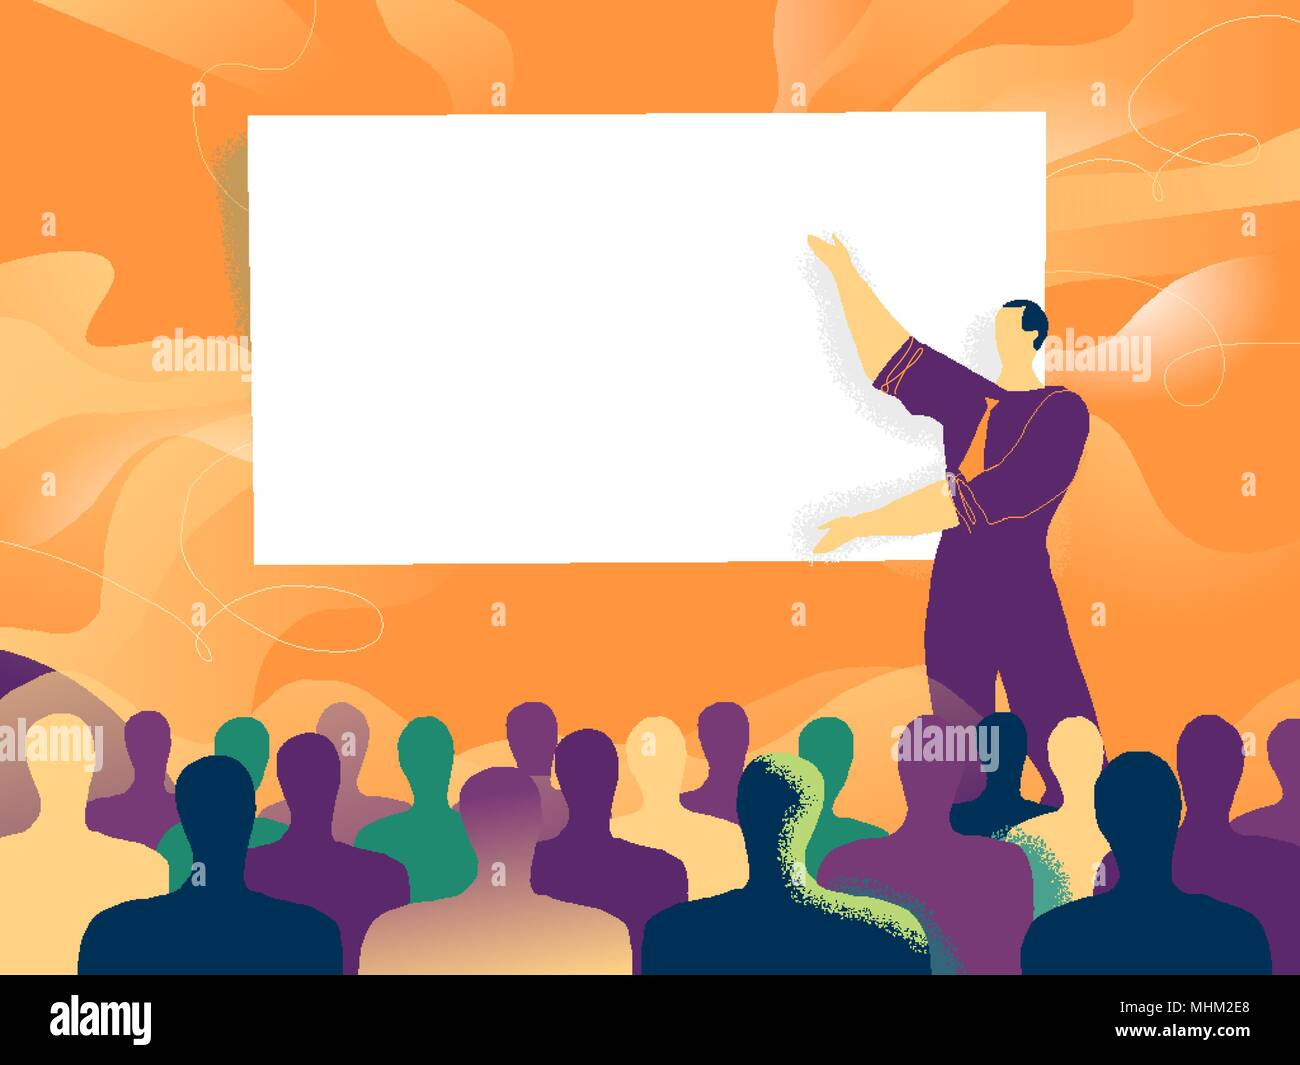 A relator presents slide during a conference in front of crowd - Stock Image